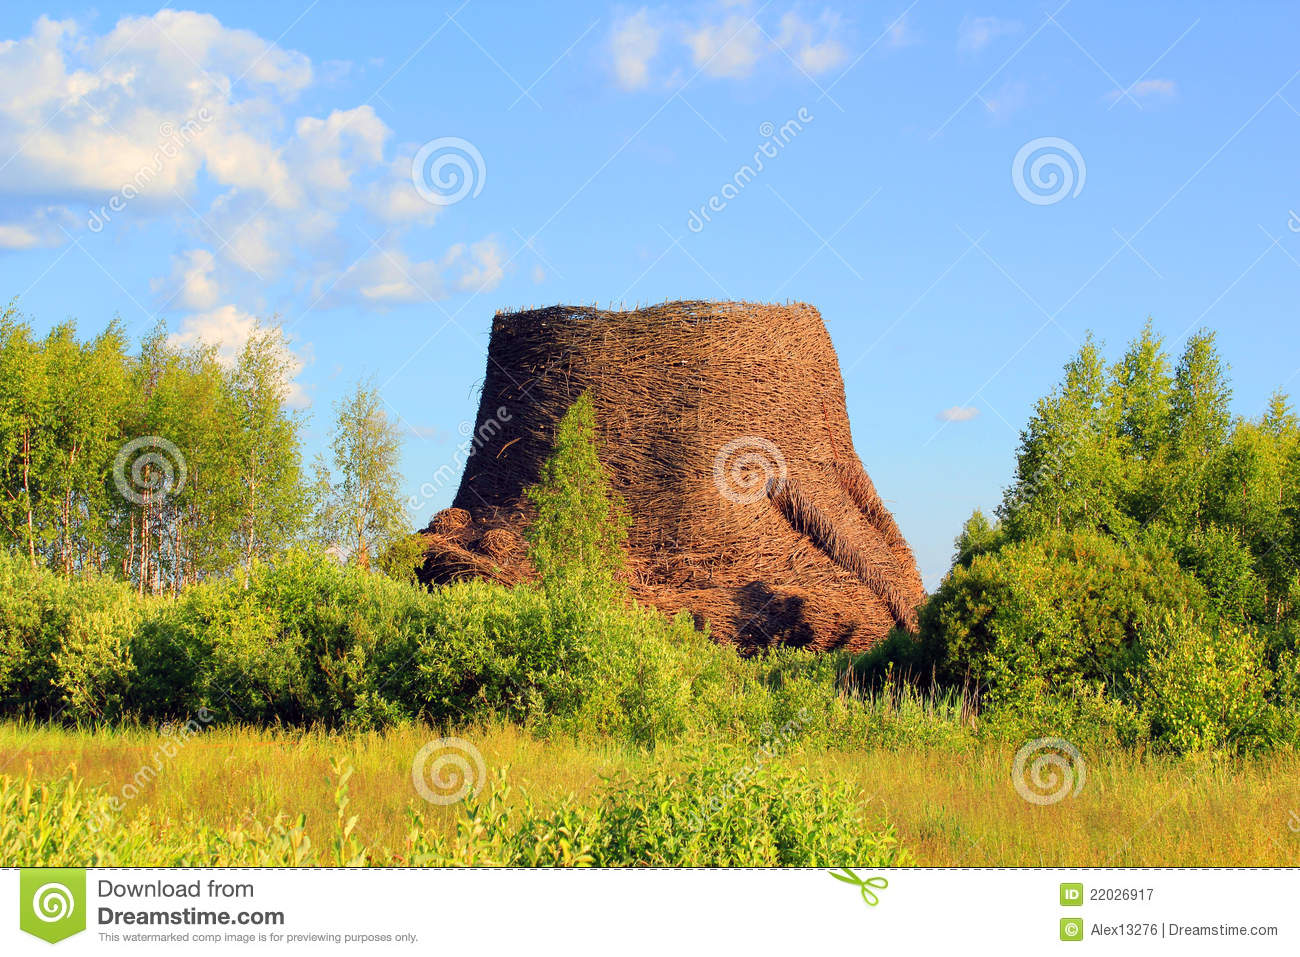 Hyperboloid Cooling Tower Royalty Free Stock Photography - Image ...